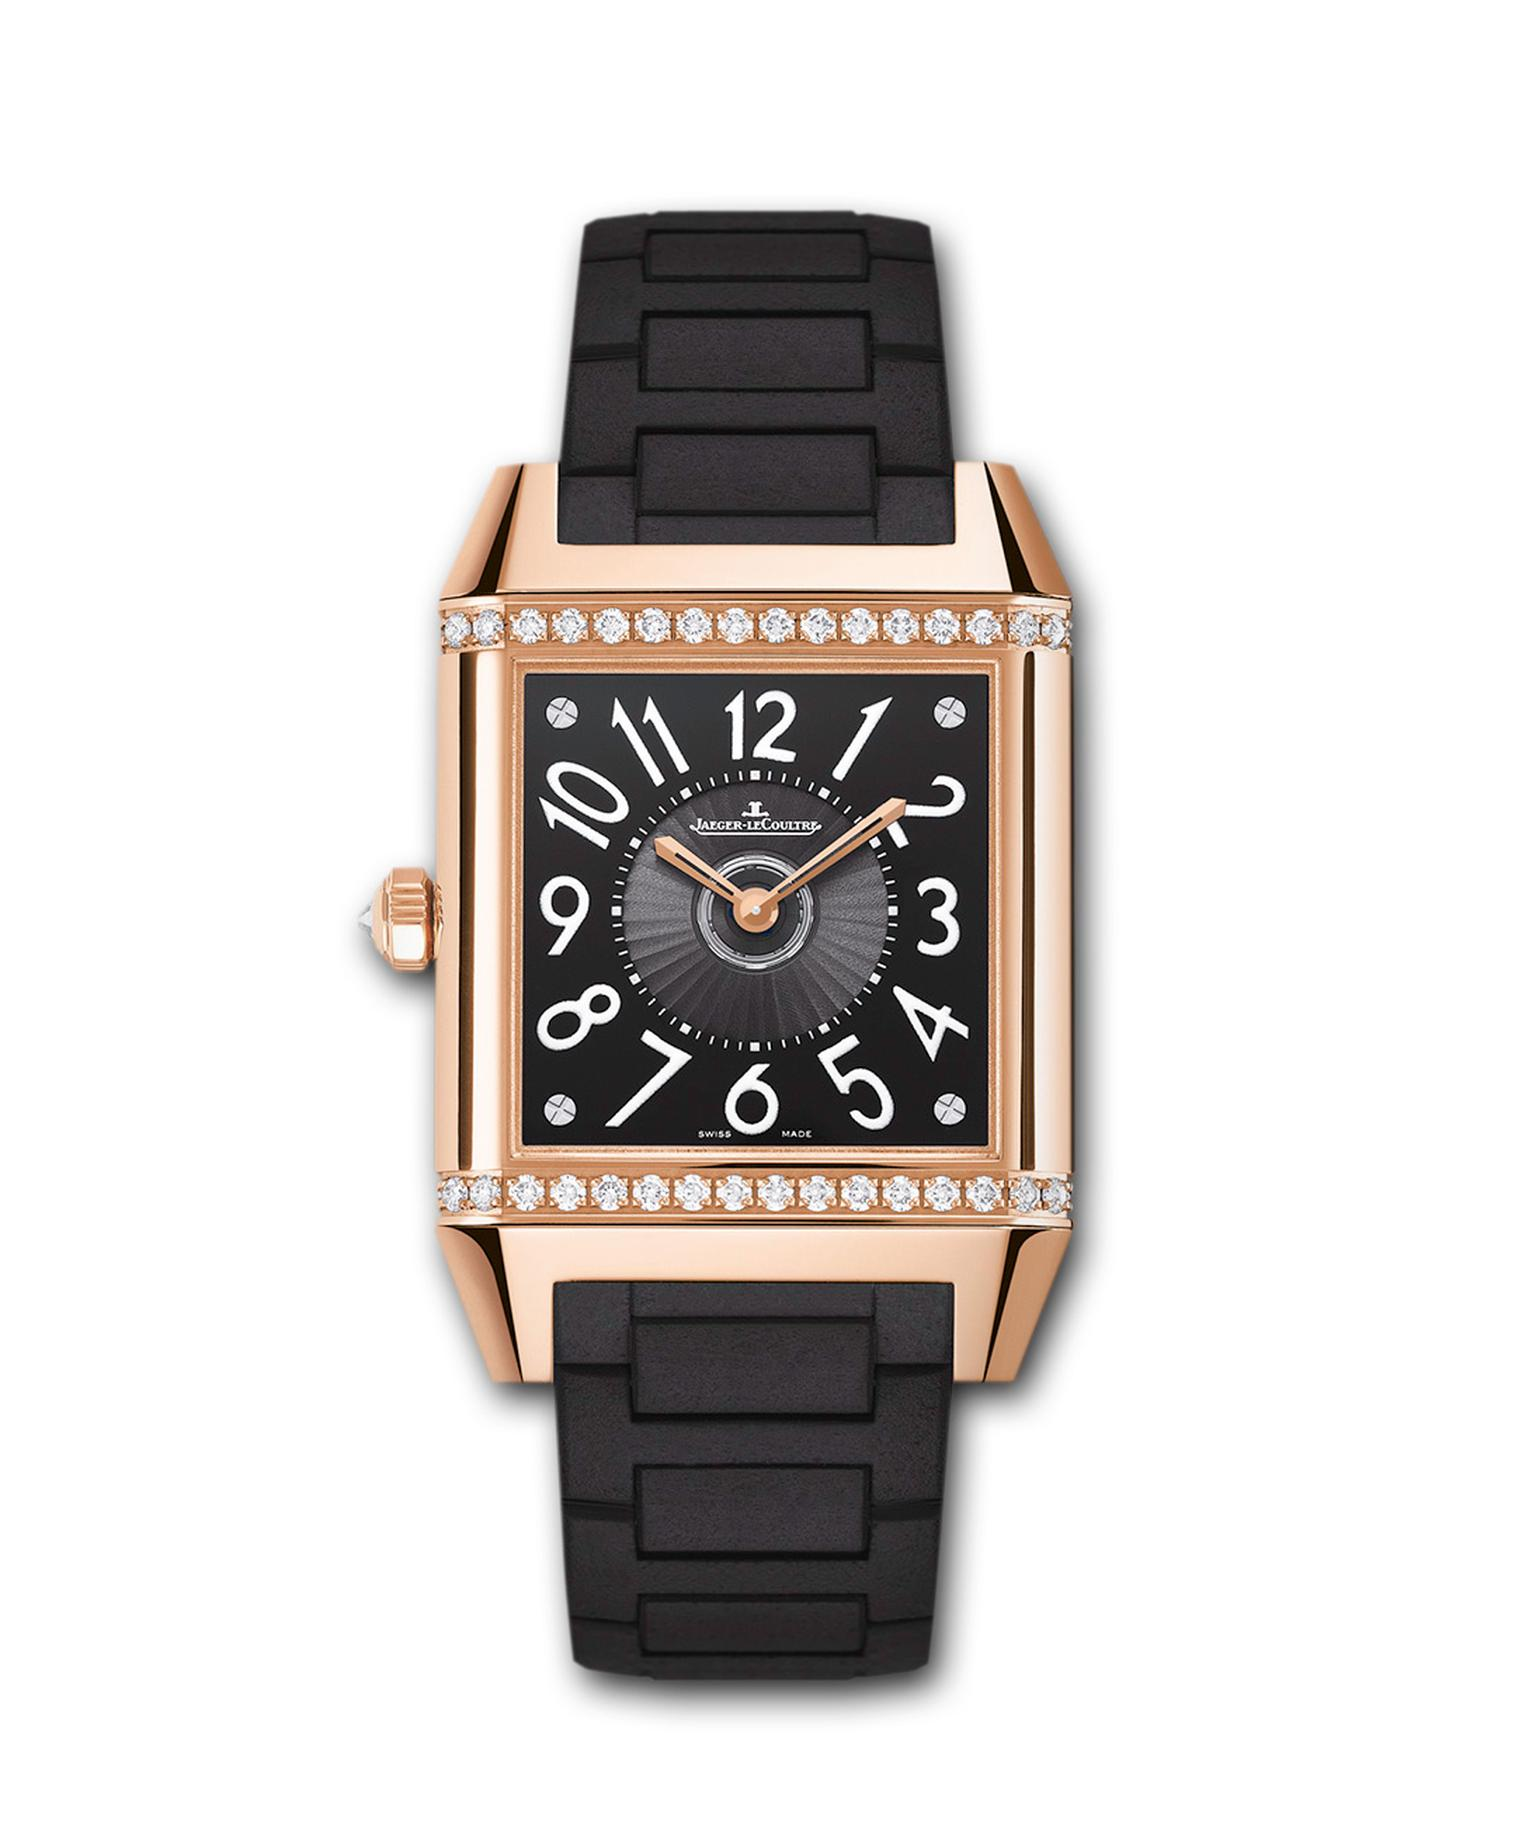 The Jaeger-LeCoultre Reverso Squadra Lady Duetto watch features a back dial in black with a visible oscillating rotor and Arabic numerals.